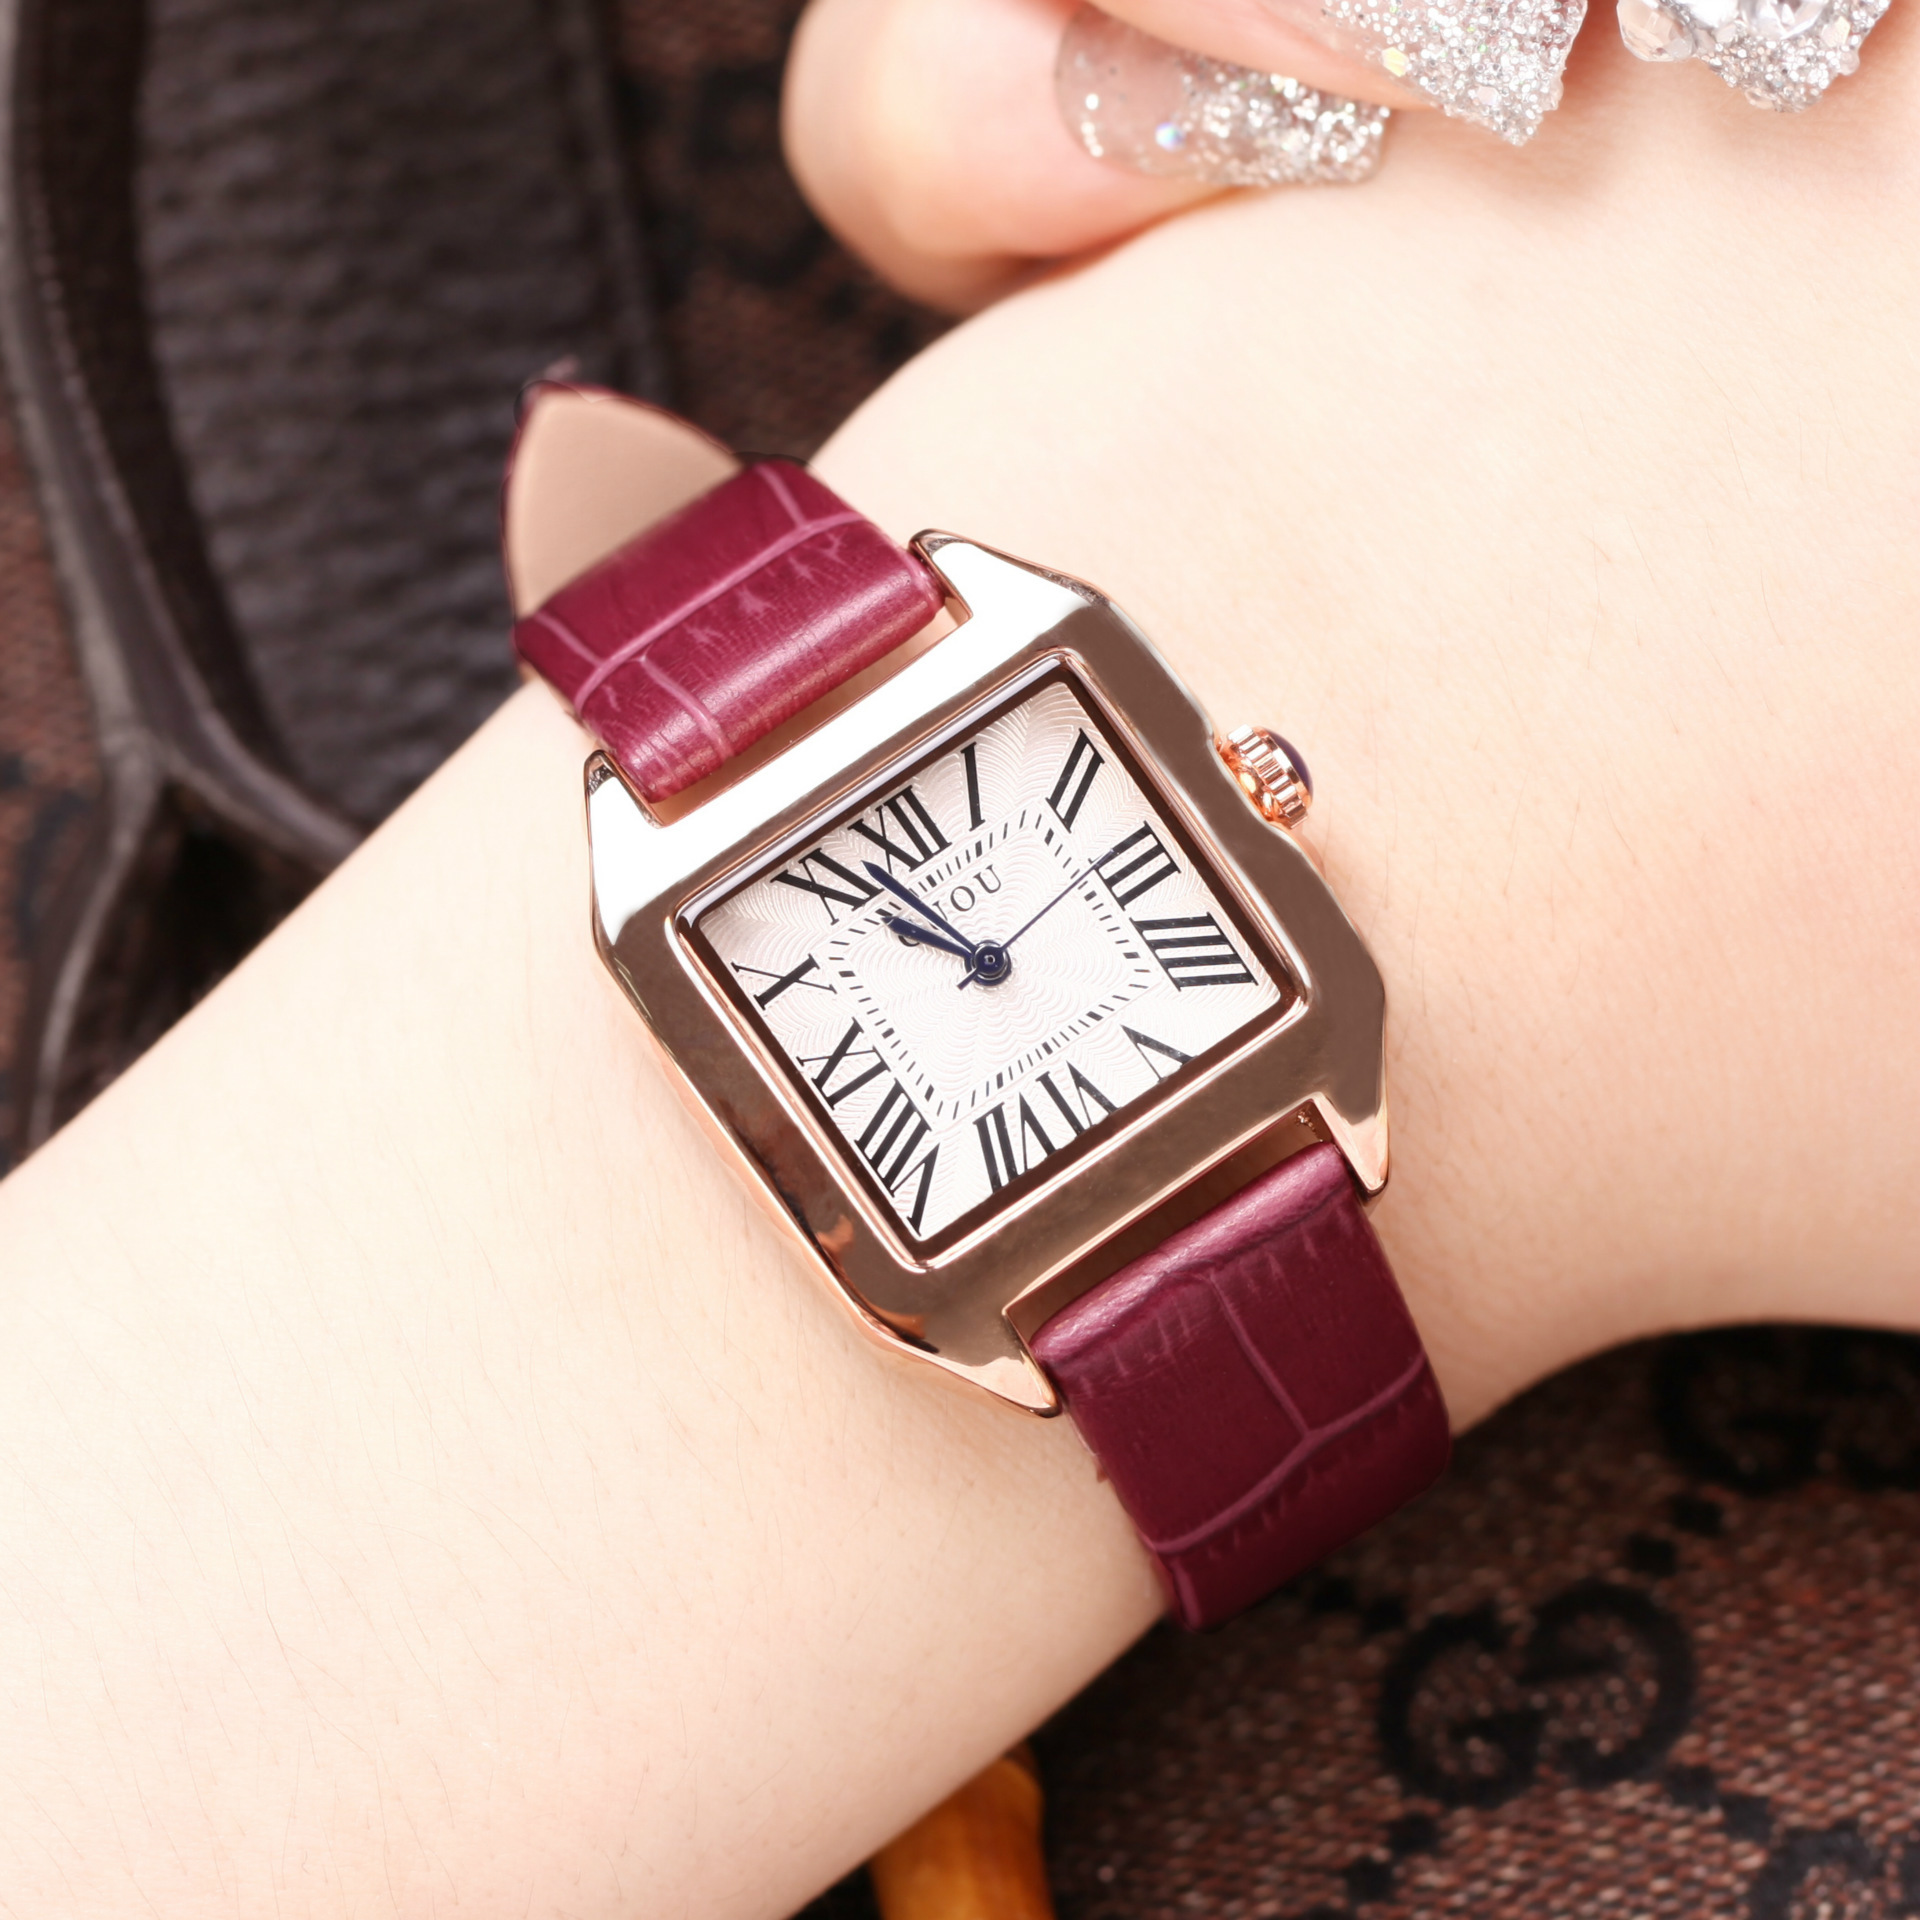 2018 New Top Guou Brand Women Watches Fashion Square Watch Luxury Brand Leather Clock Relogio Feminino Reloj Mujer Saat